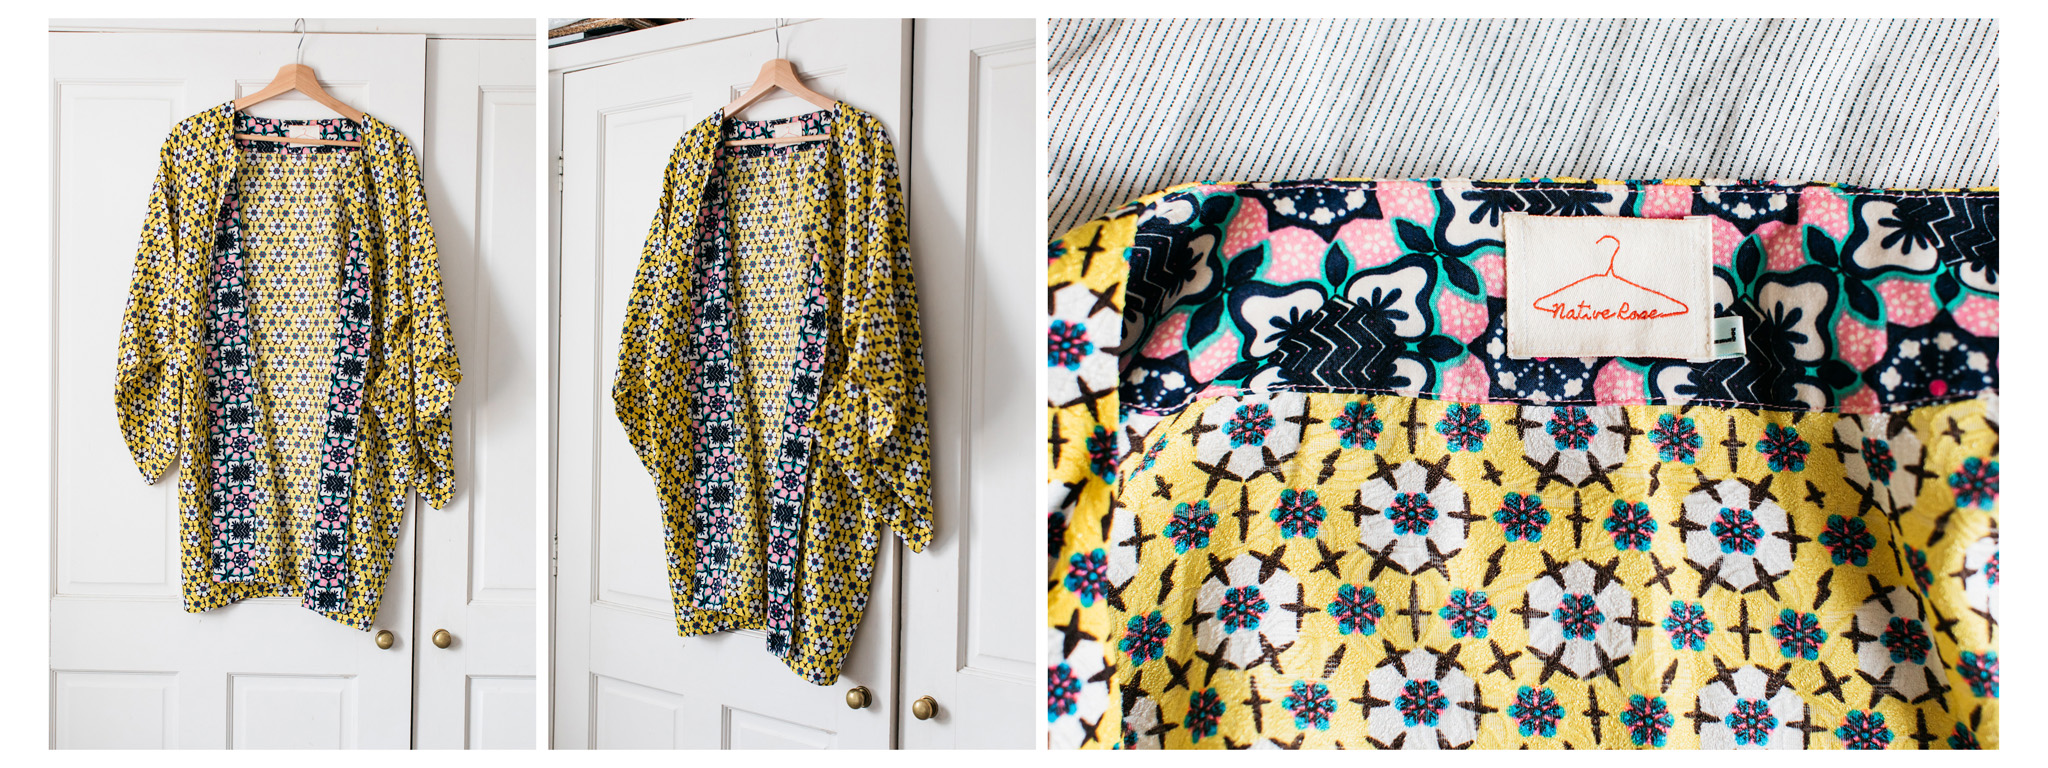 How to photograph and list clothing for successful ebay auctions by Retreat blog